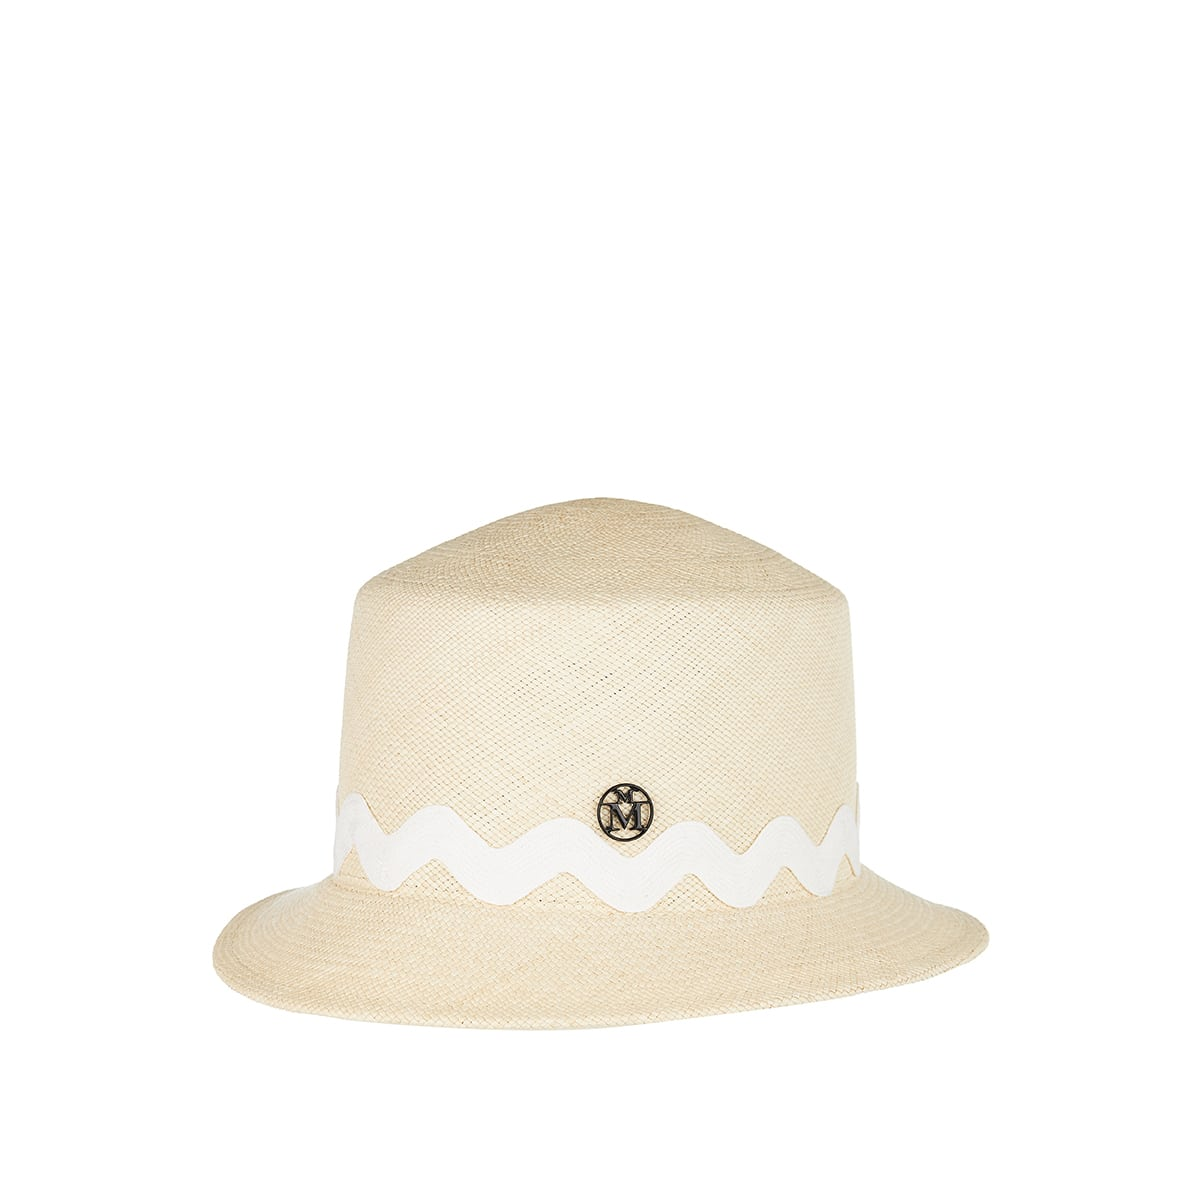 Arsene straw cloche hat